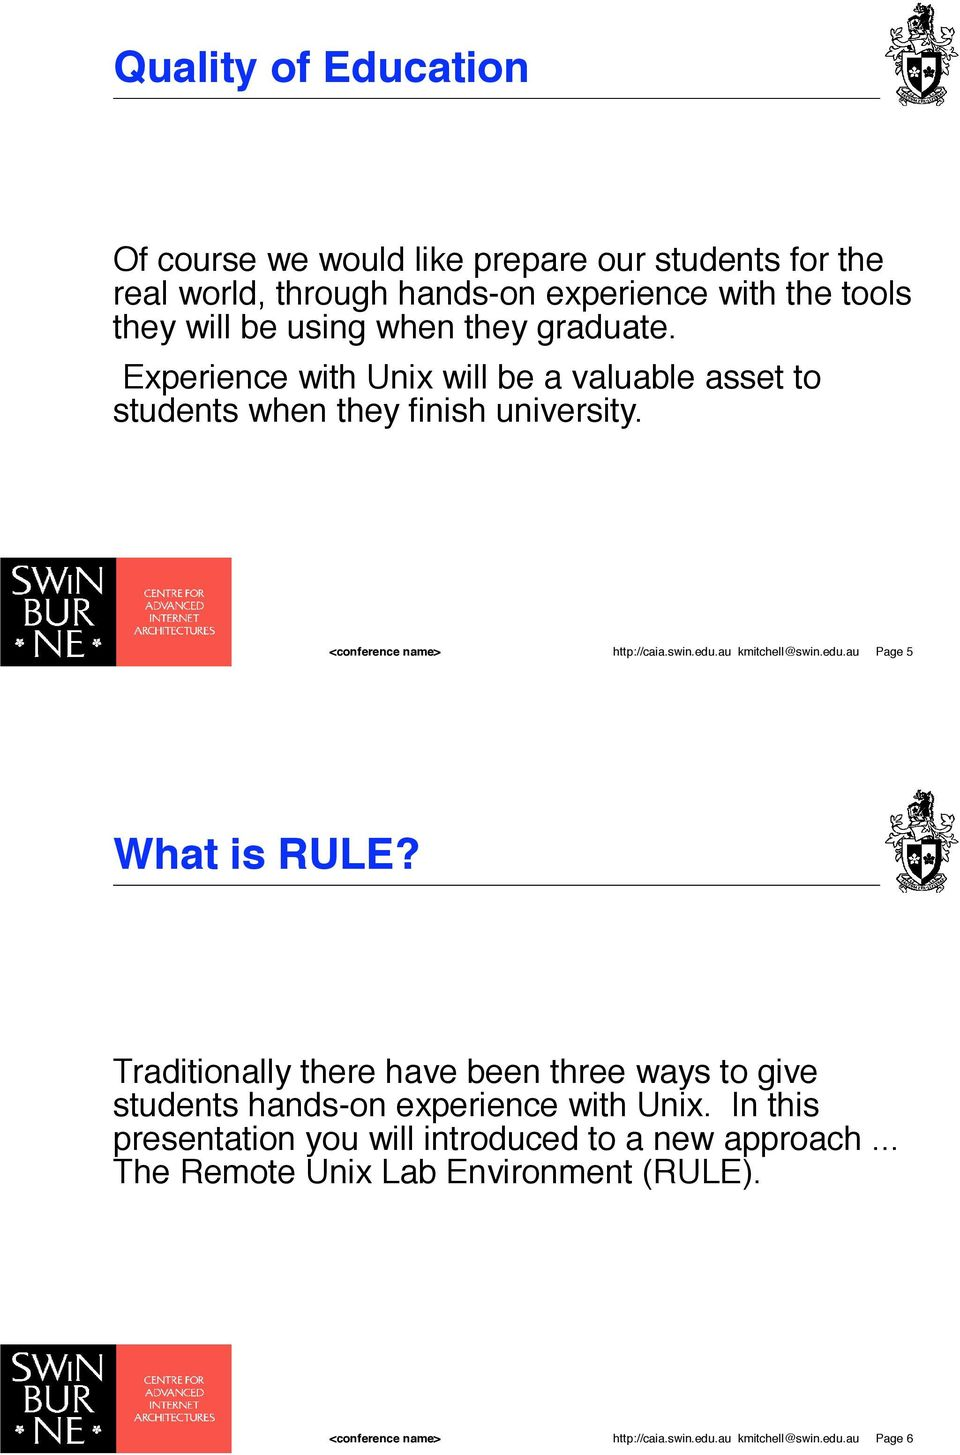 au kmitchell@swin.edu.au Page 5 What is RULE? Traditionally there have been three ways to give students hands-on experience with Unix.